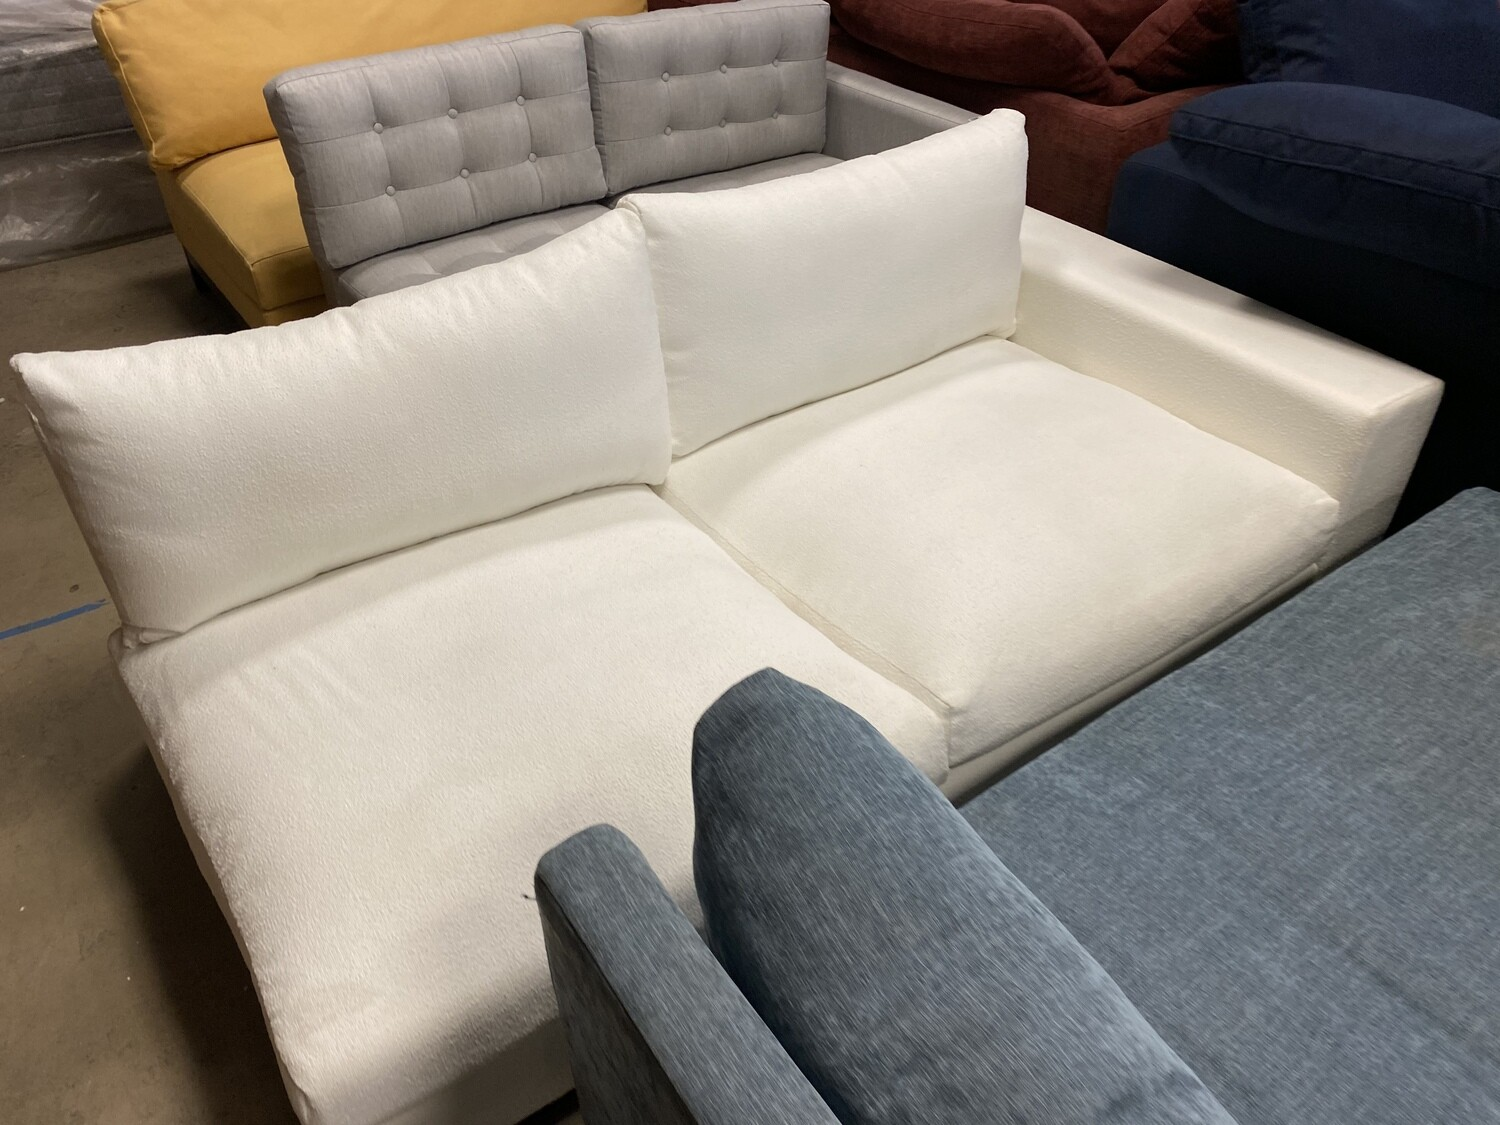 JB Holt Sectional (only one part) Tussah Snow